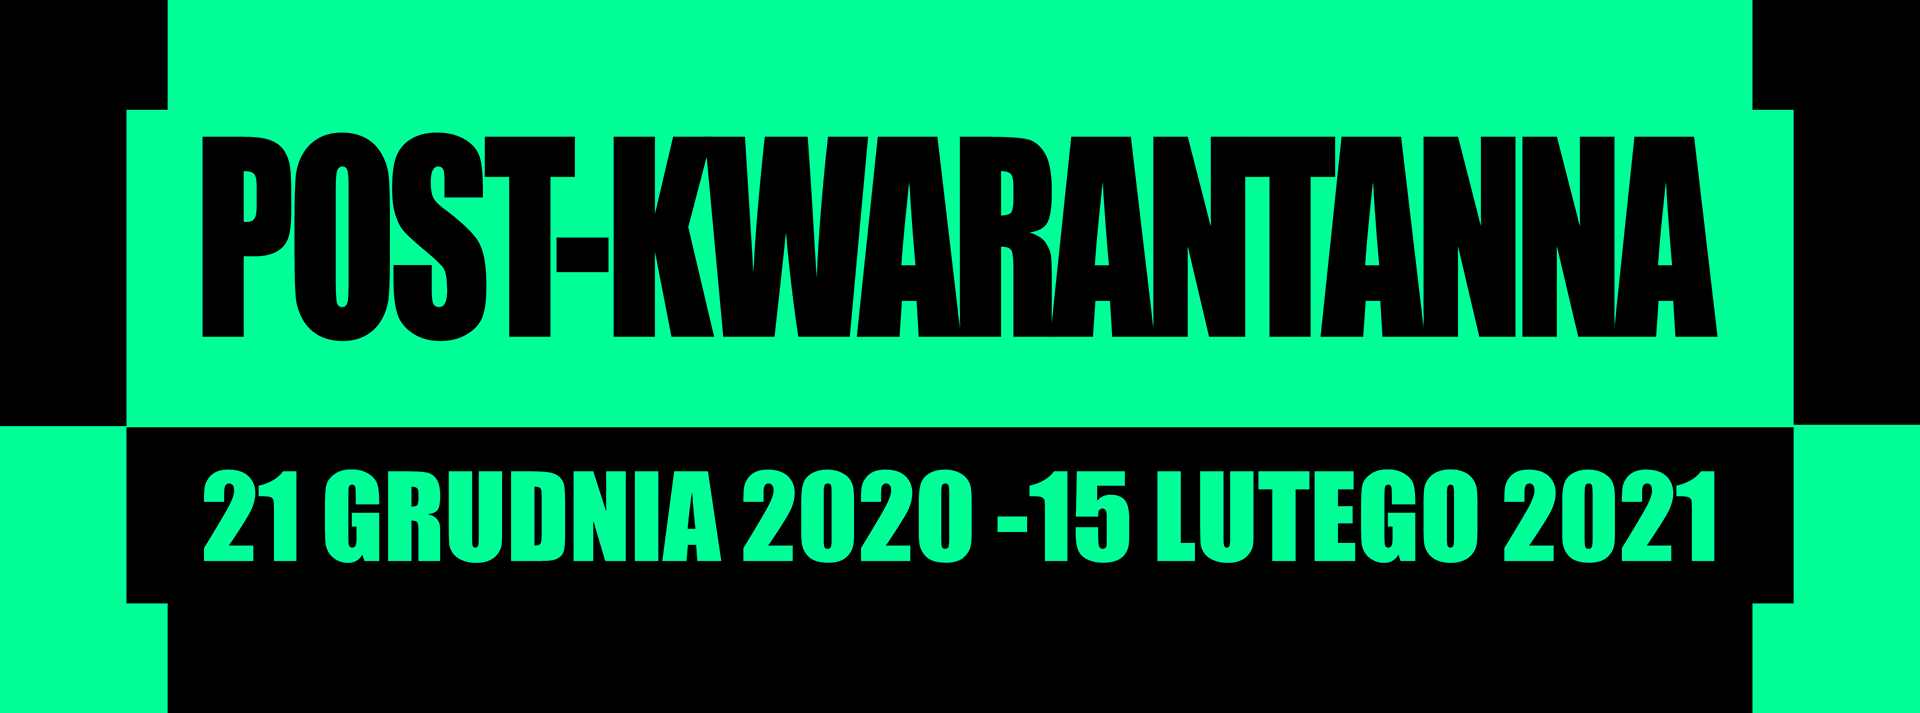 210215-post-kwarantanna